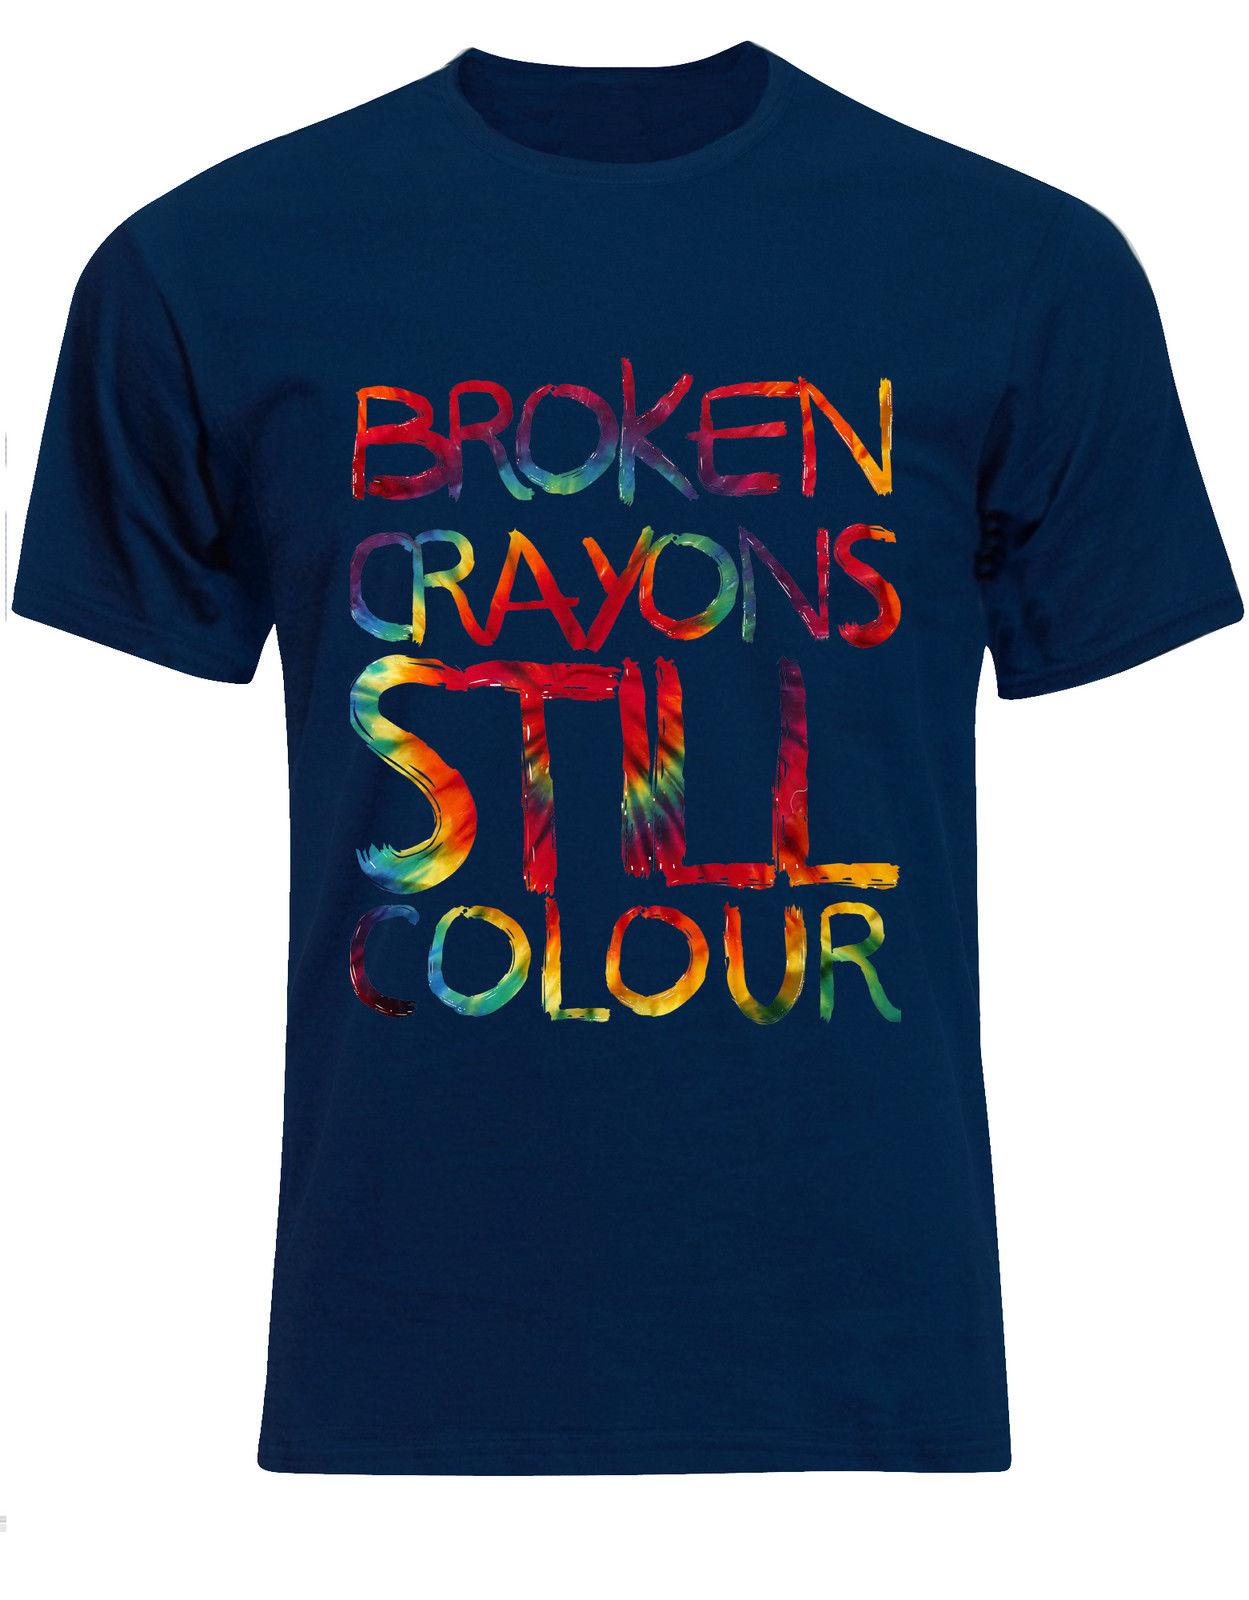 Broken Crayons Still Colour Tie Dye Pattern Vibe Quote Mens Tshirt